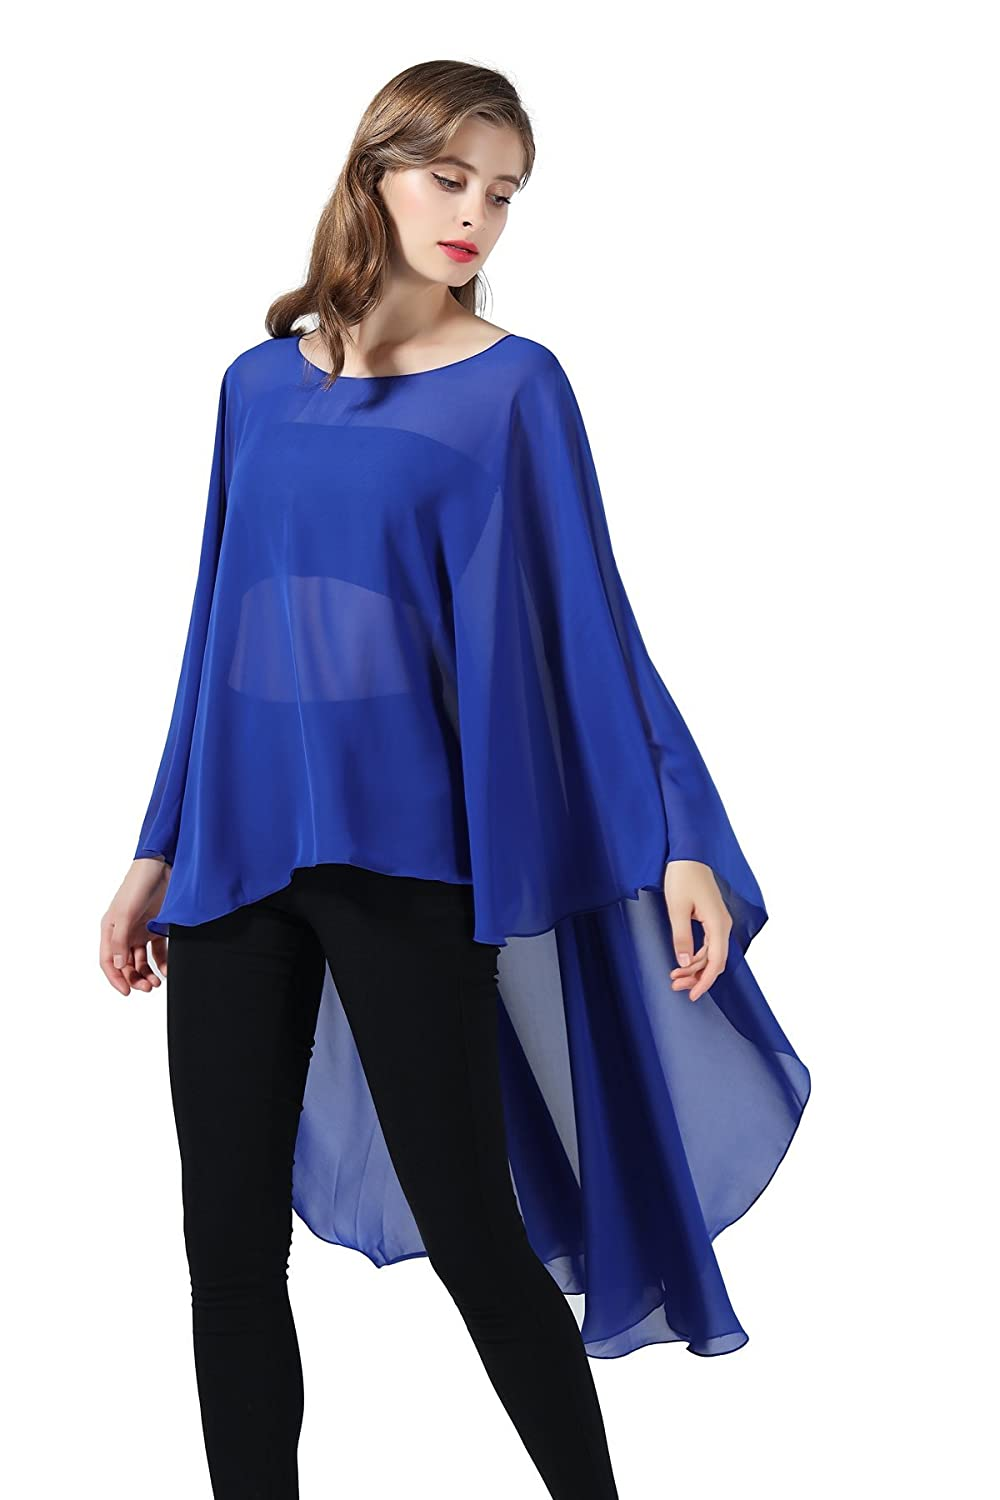 Chiffon Shawl Women Cape Beach Cover Up Wedding Tops Bridal Capelet Evening  Wraps Black at Amazon Women s Clothing store  8229808cb9af